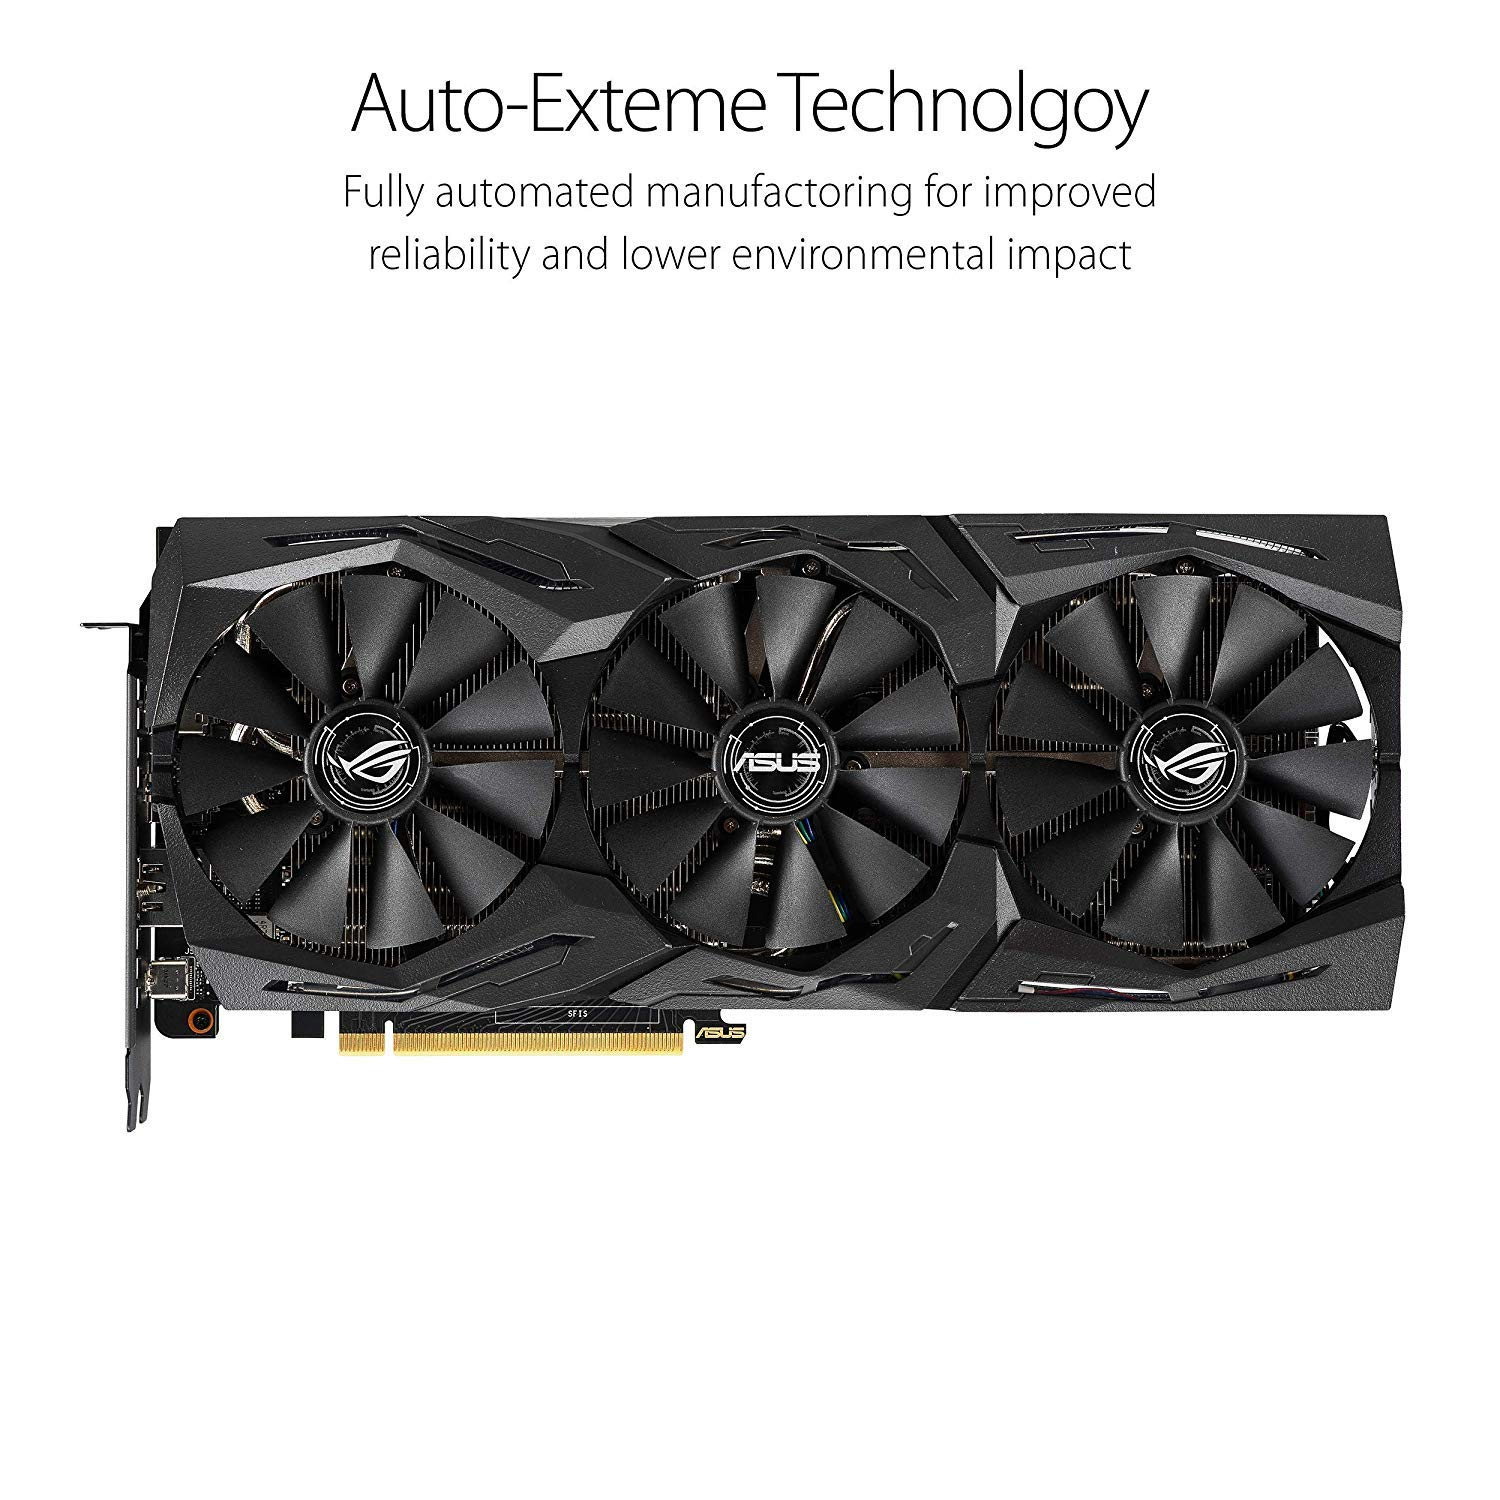 ASUS ROG Strix GeForce RTX 2070 Overclocked 8G GDDR6 VR Ready HDMI DP 1.4 USB Type-C Graphics Gaming Card (ROG-STRIX-RTX-2070-O8G) by ASUS (Image #2)